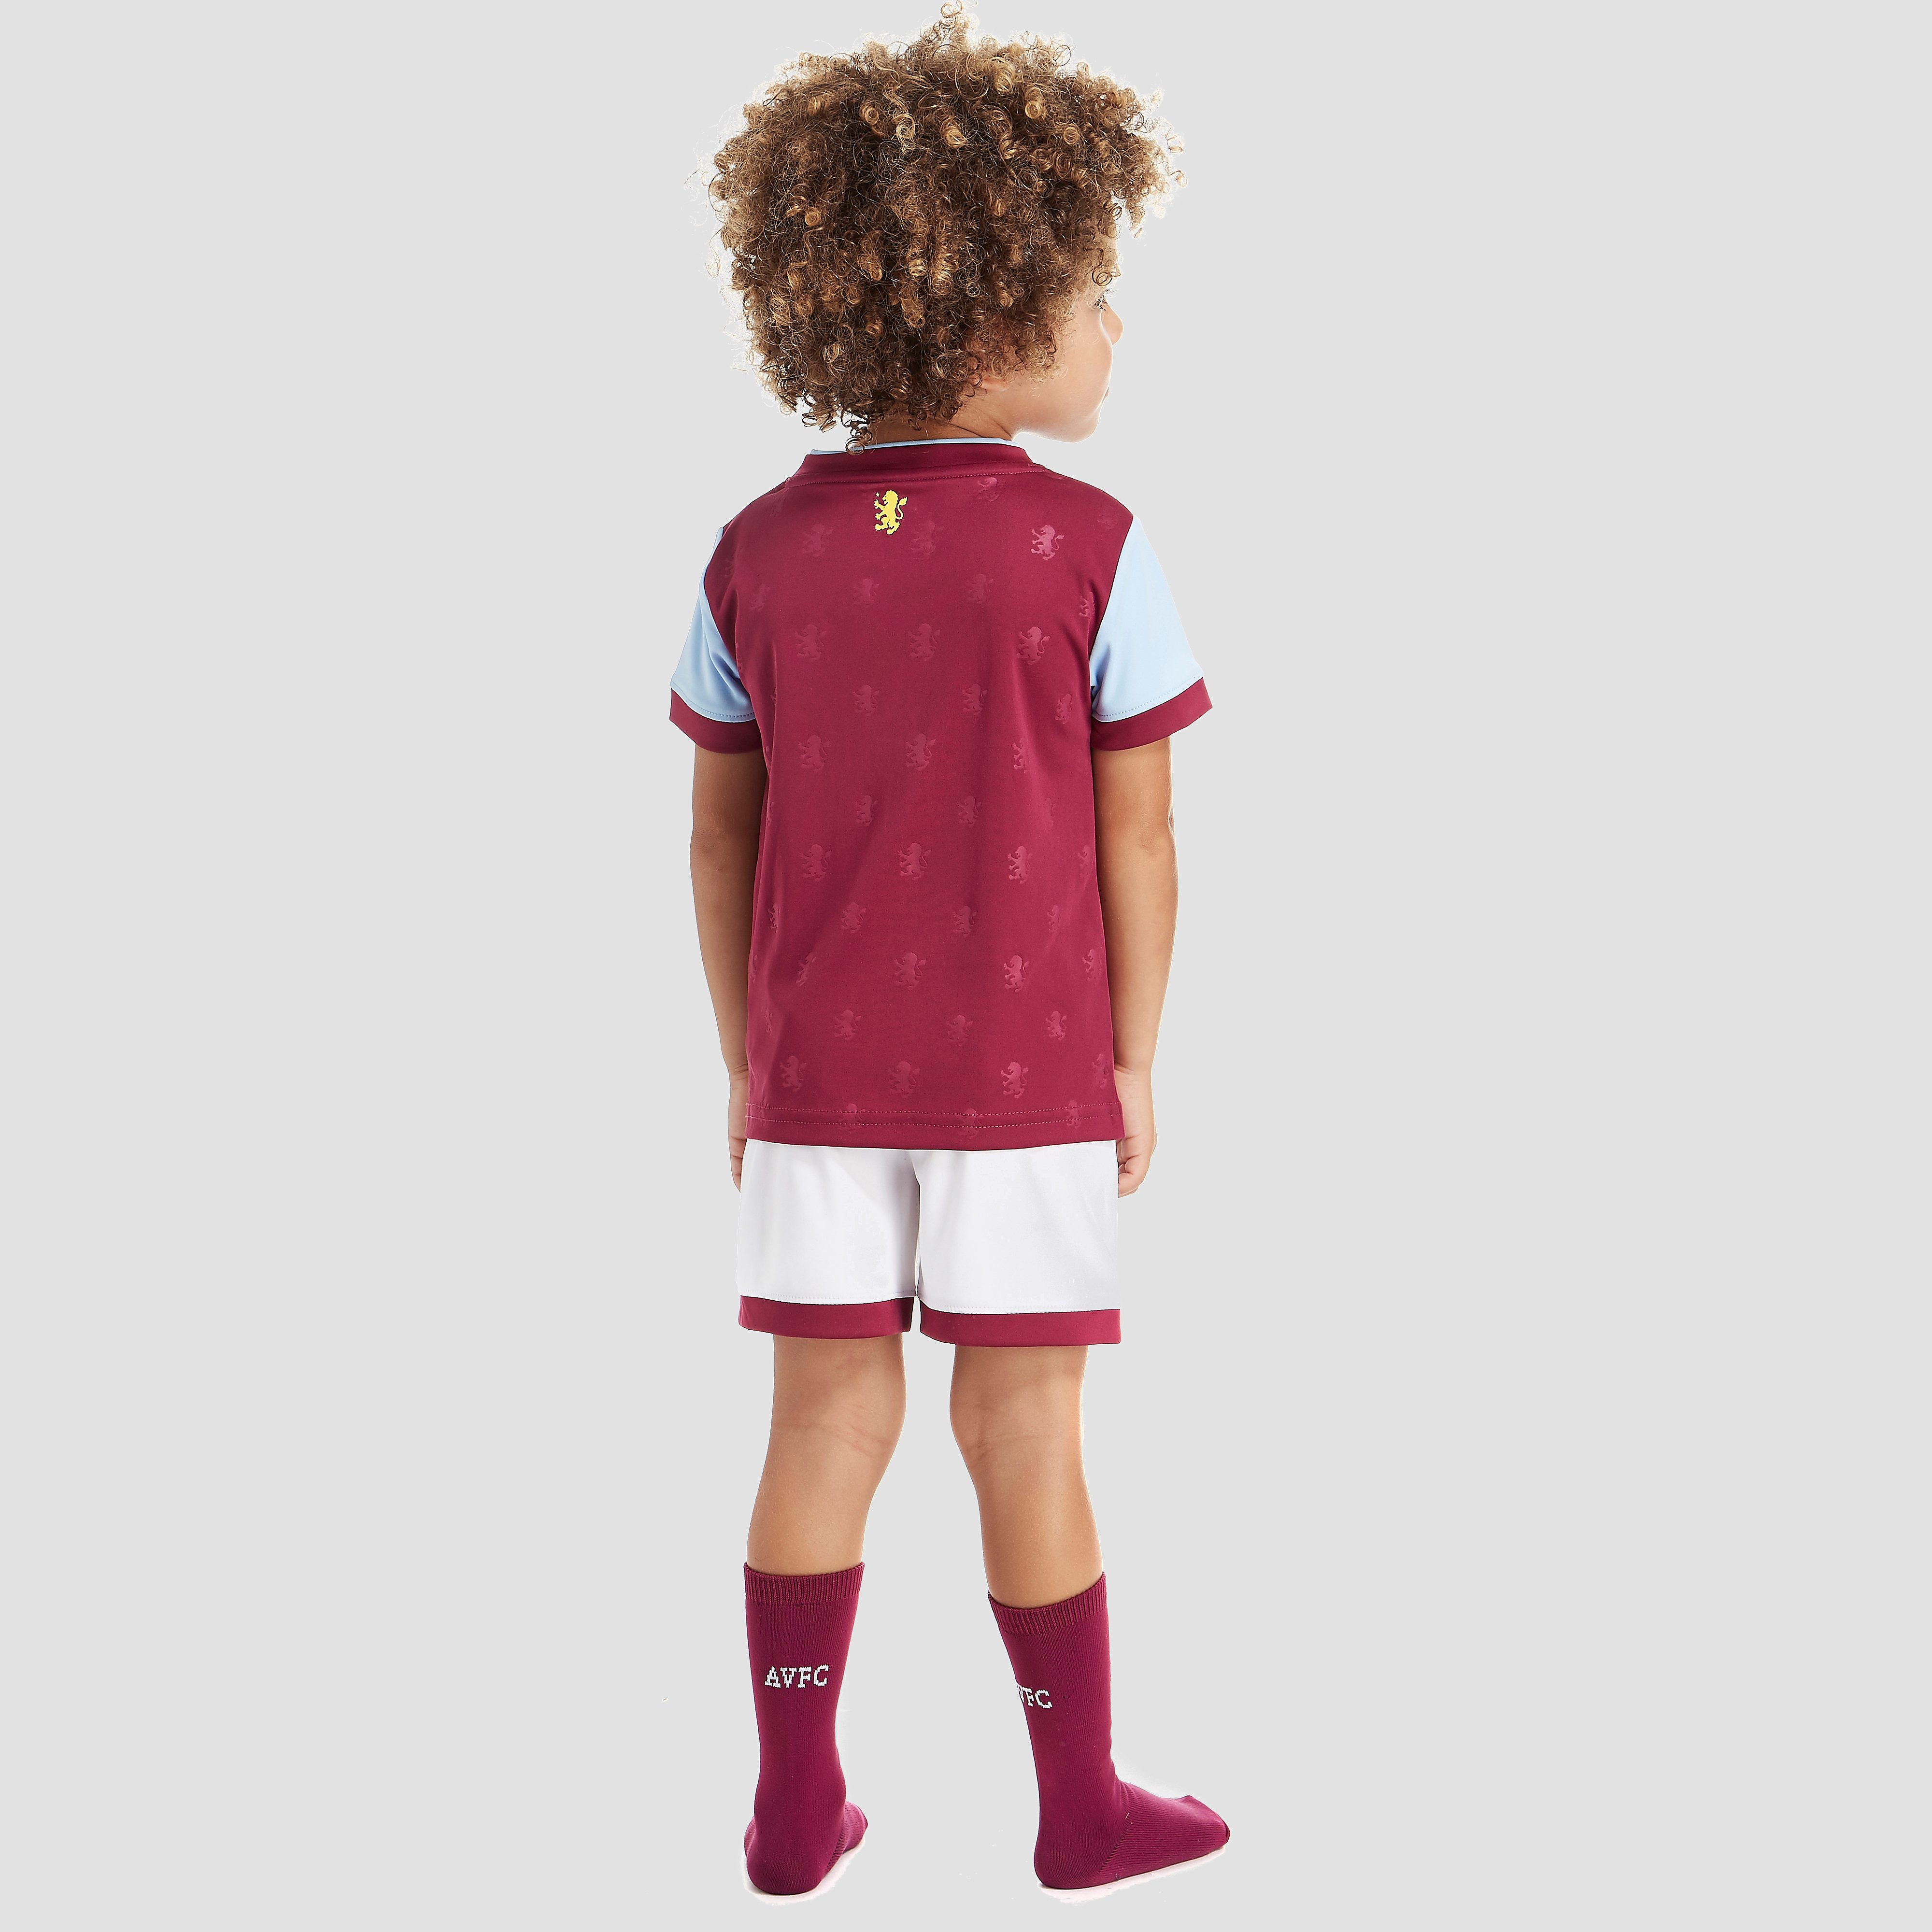 Under Armour Aston Villa 2017/18 Home Kit Children